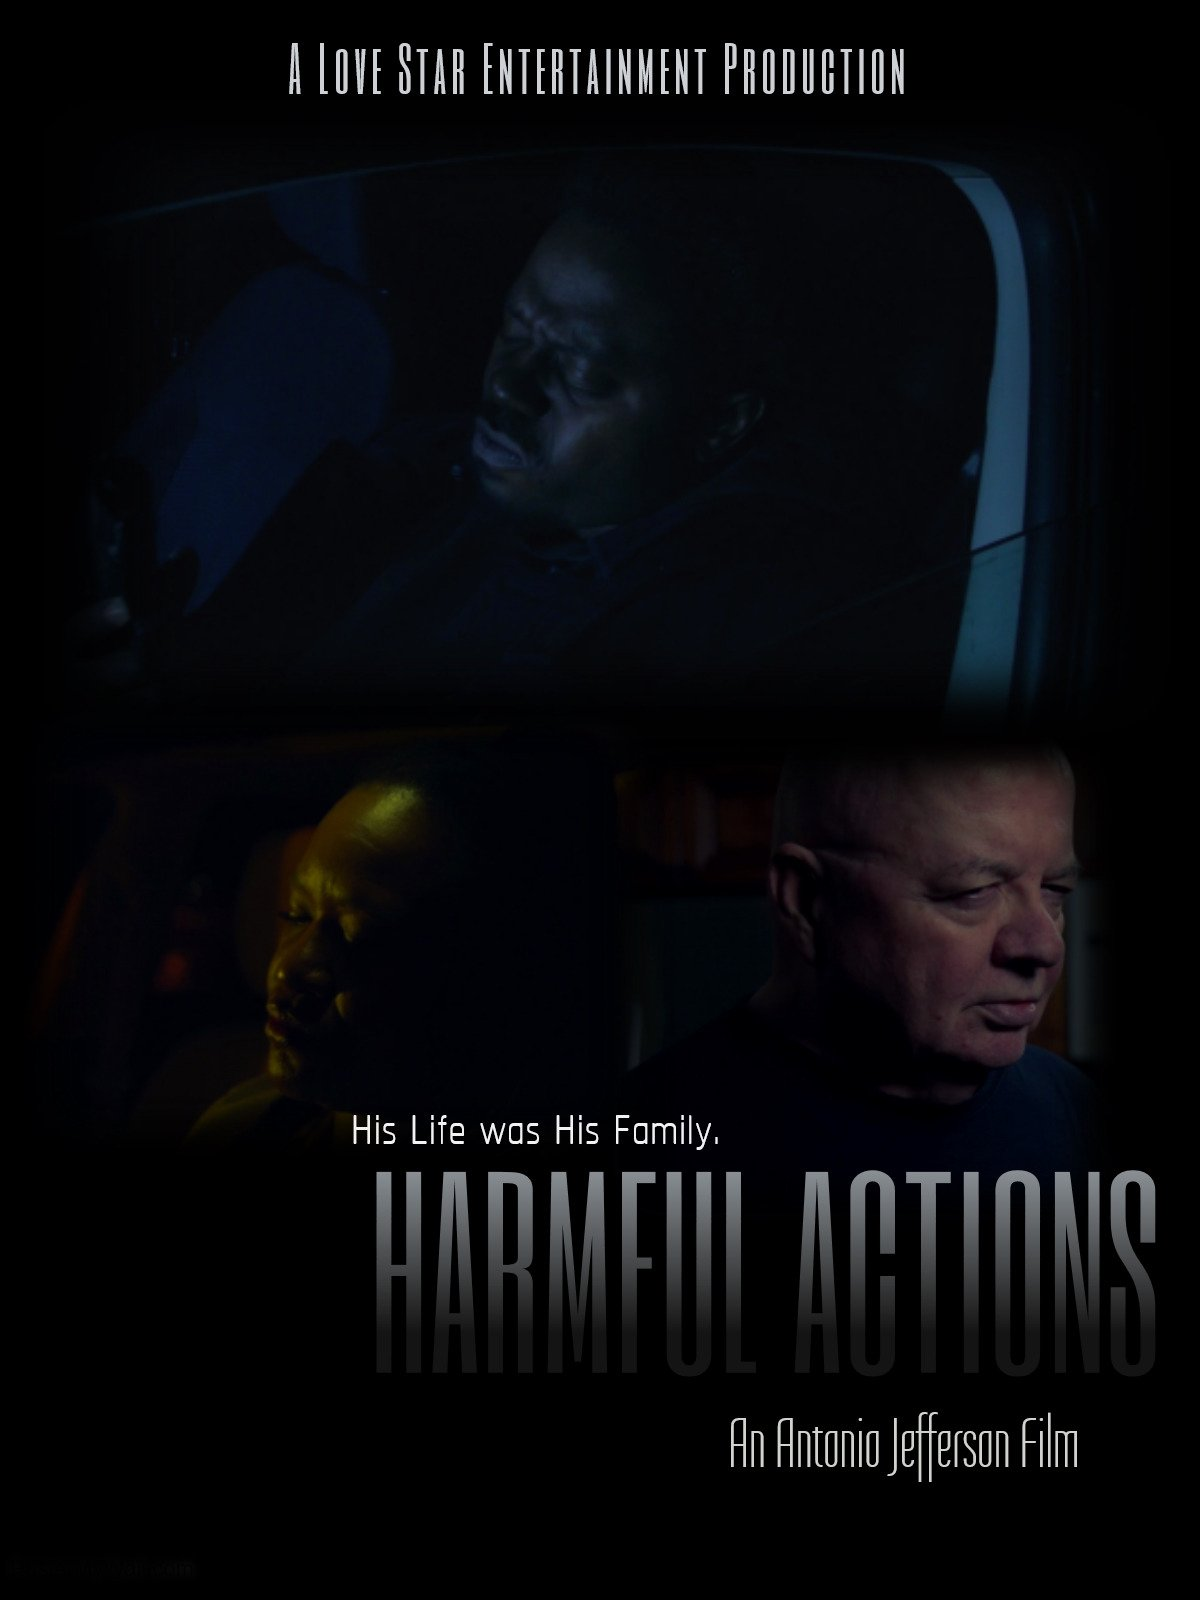 Harmful Actions